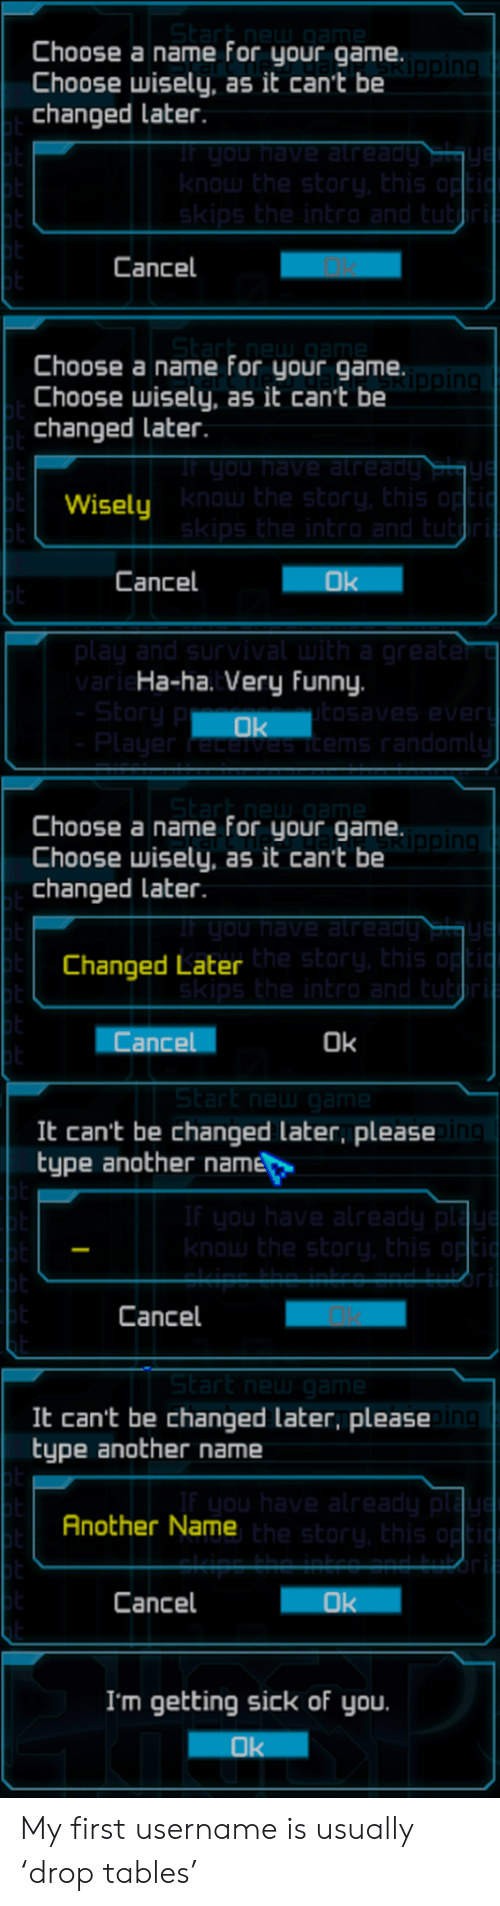 Getting Sick: Choose a name for your game.  Choose wisely, as it cant be  changed later  Cancel  Choose a name for your game.  Choose wisely, as it can't be  changed later  Wisely  Cancel  Ha-ha. Very funny.  Choose a name for your game.  Choose wisely, as it can't be  changed Later  Changed Later  Cance  Ok  It can't be changed later, please  type another name  Cancel  It can't be changed later, please  type another name  Another Name  Cancel  I'm getting sick of you My first username is usually 'drop tables'